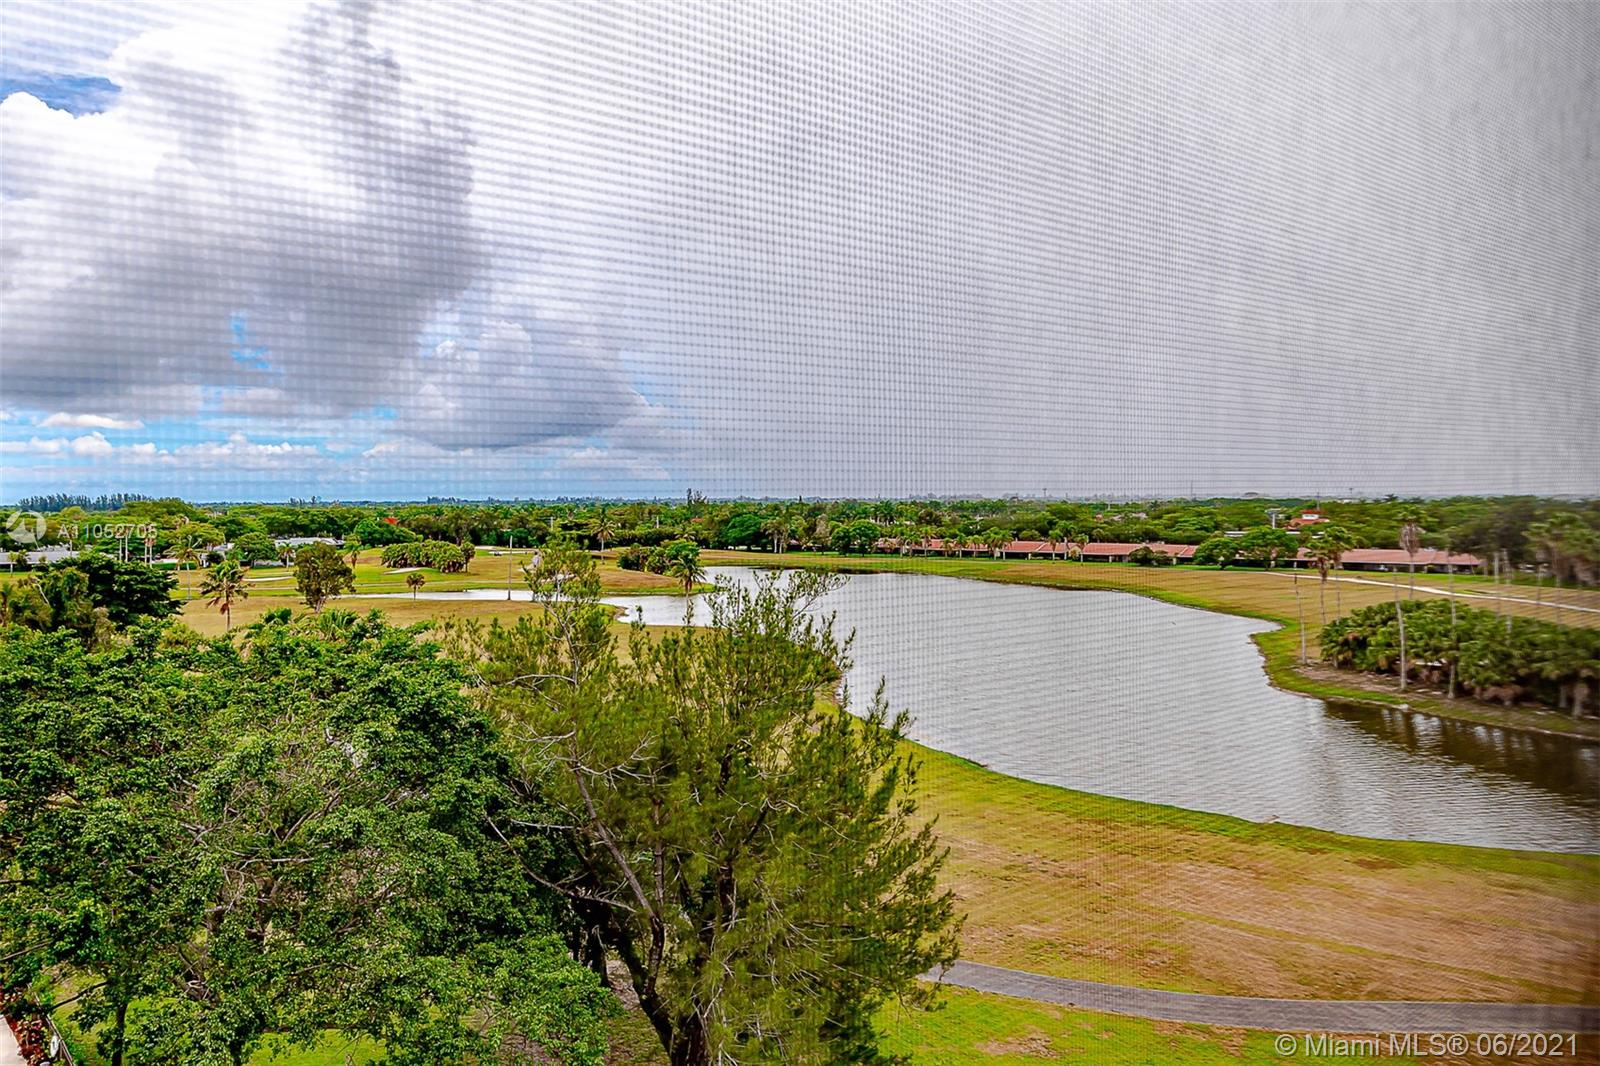 PANORAMIC GOLF, WATER & HORIZON VIEWS from this desirable 8th floor Penthouse condo.  Tons of natural light, open floorplan, w/ large glass enclosed balcony providing extra living space & open breezes.  HUGE primary bedrm suite, massive closets, White Eat-In Kitchen, Utility room w/full size washer/dryer, 2nd bed is used as a den w/movable wall.  Doorman building, private pool, social room, tennis, car wash area.  ONLY $299/year for membership to Bonaventure Country Club granting full access including pools, tennis, gym, meeting rooms, bowling lanes & more. Close to shopping, airports, dining; A rated schools; one of the safest cities in the USA.  Estate Sale needs court approval, but is in process and only waiting for contract, will not cause a delay with closing. Furnished or Unfurnished